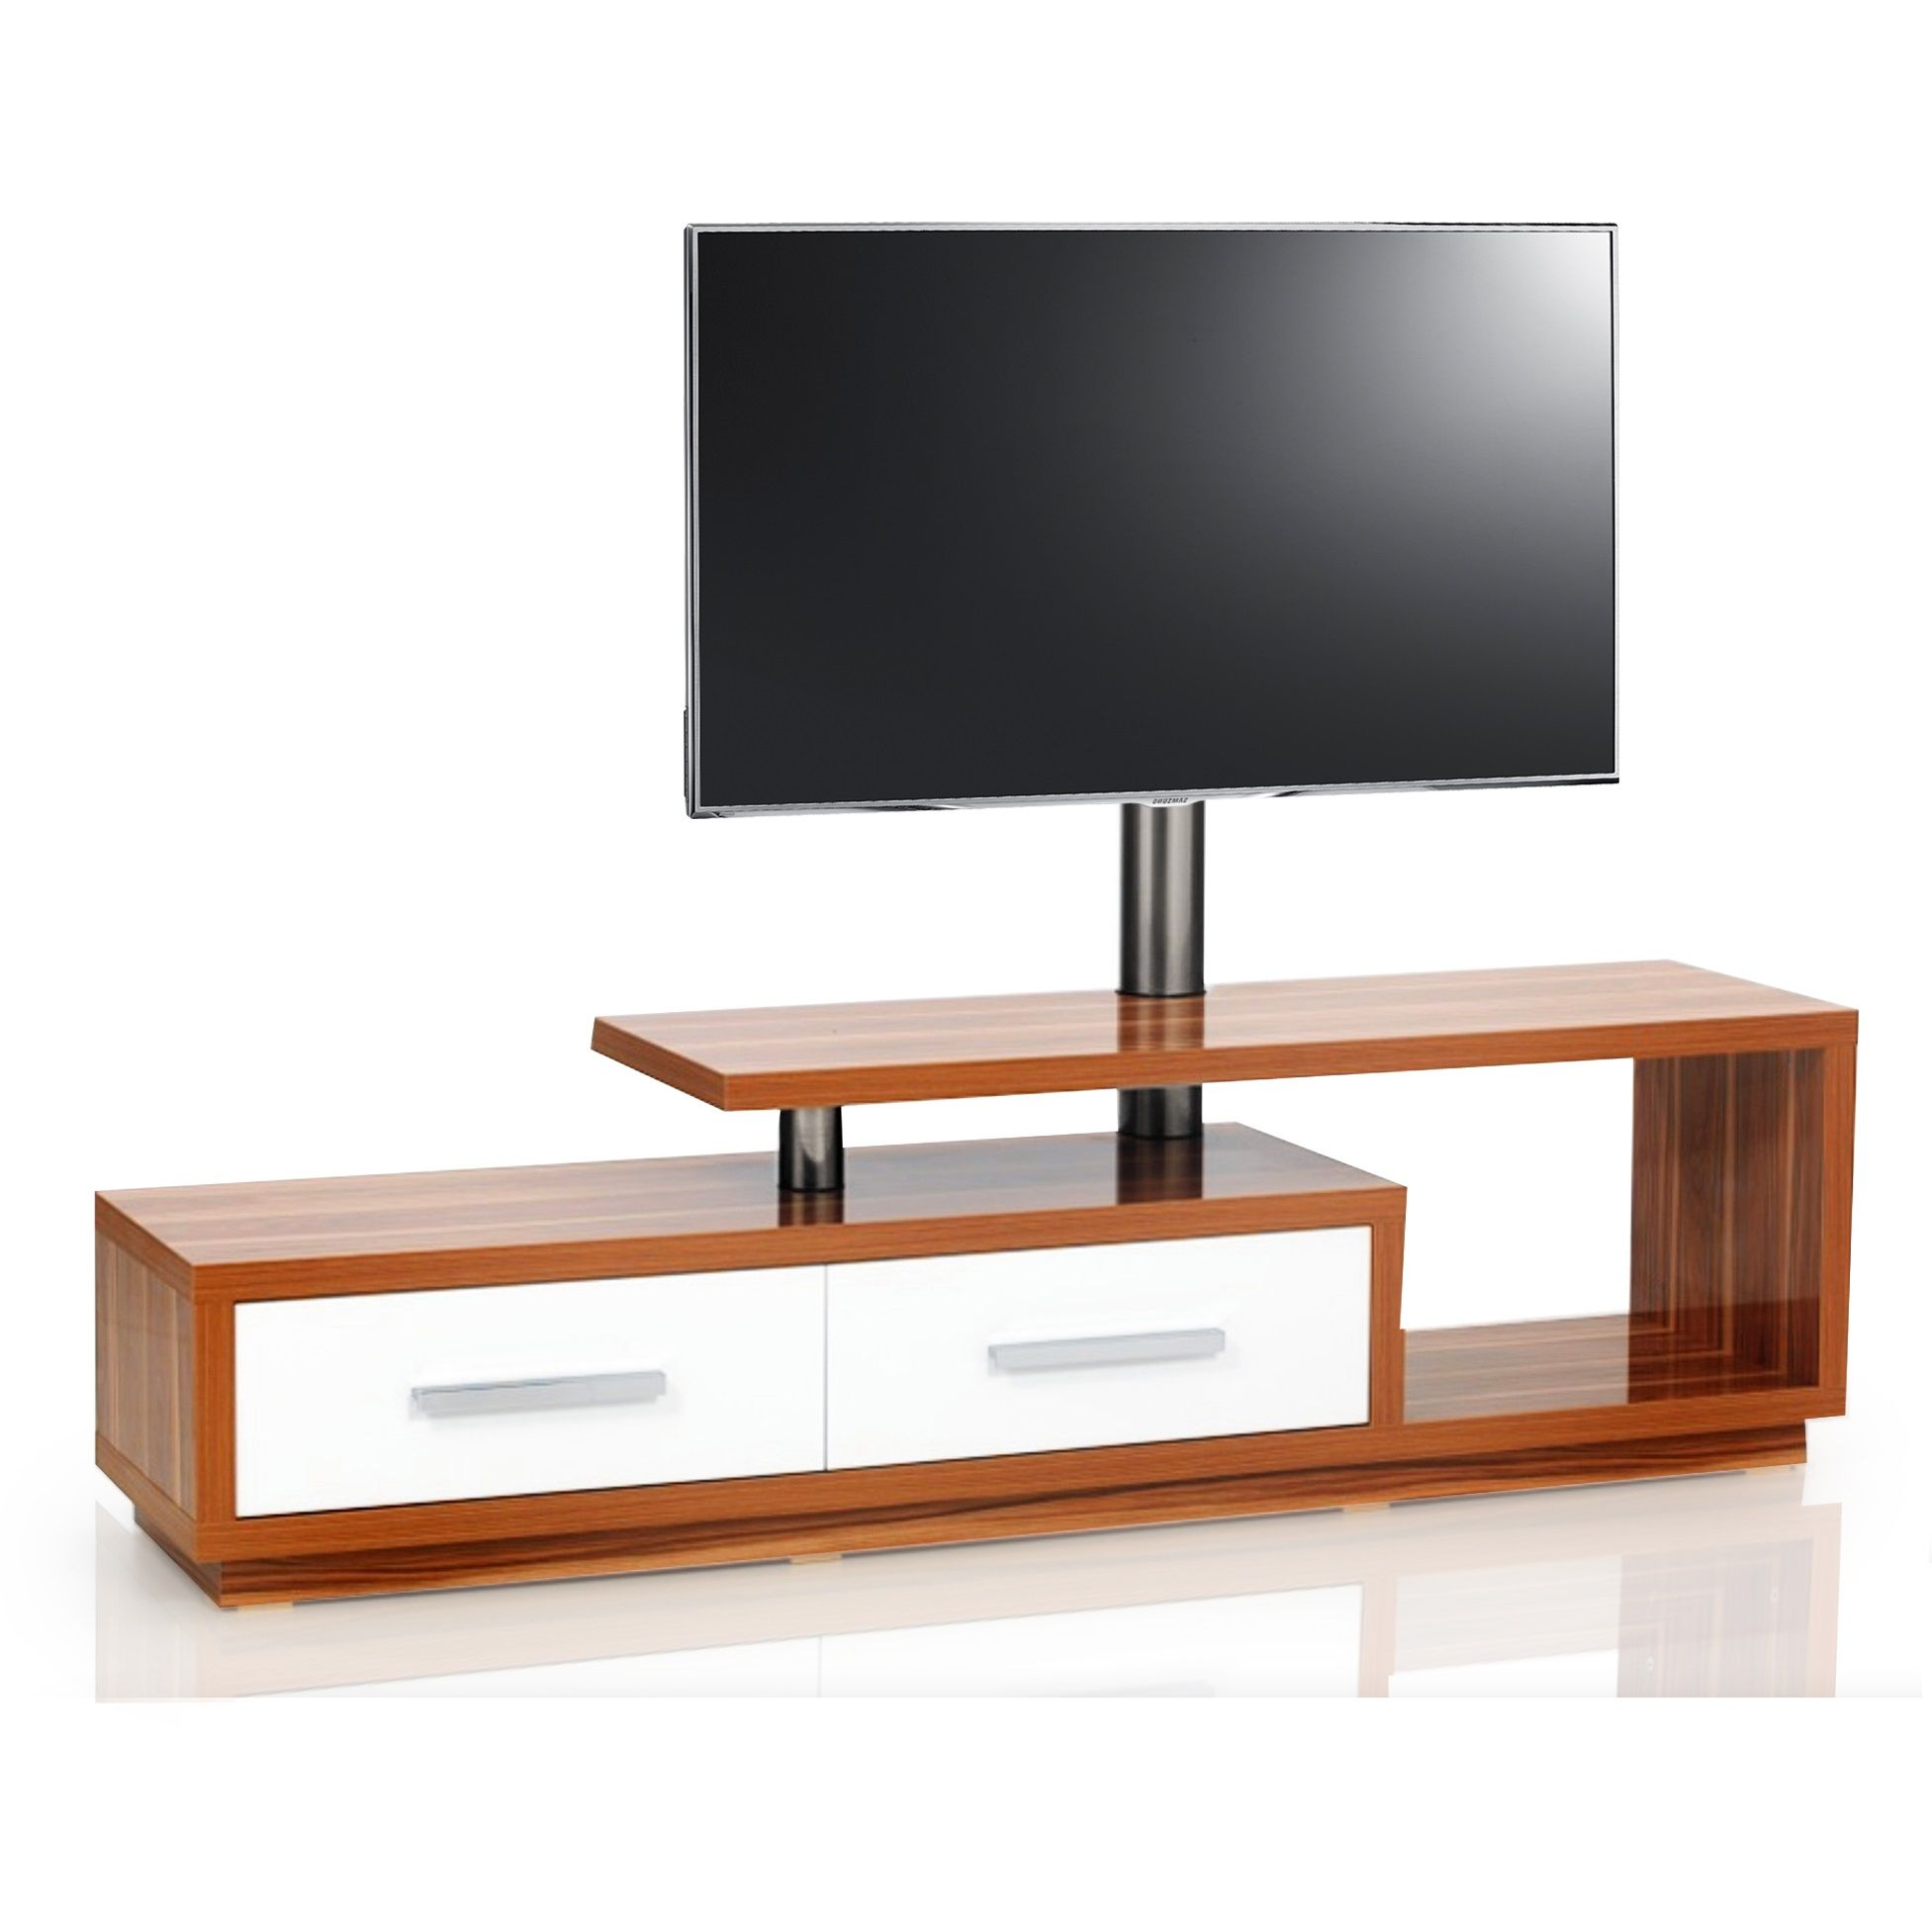 Best Table De Tv Design Images Joshkrajcik Us Joshkrajcik Us # Meuble Tv Avec Support